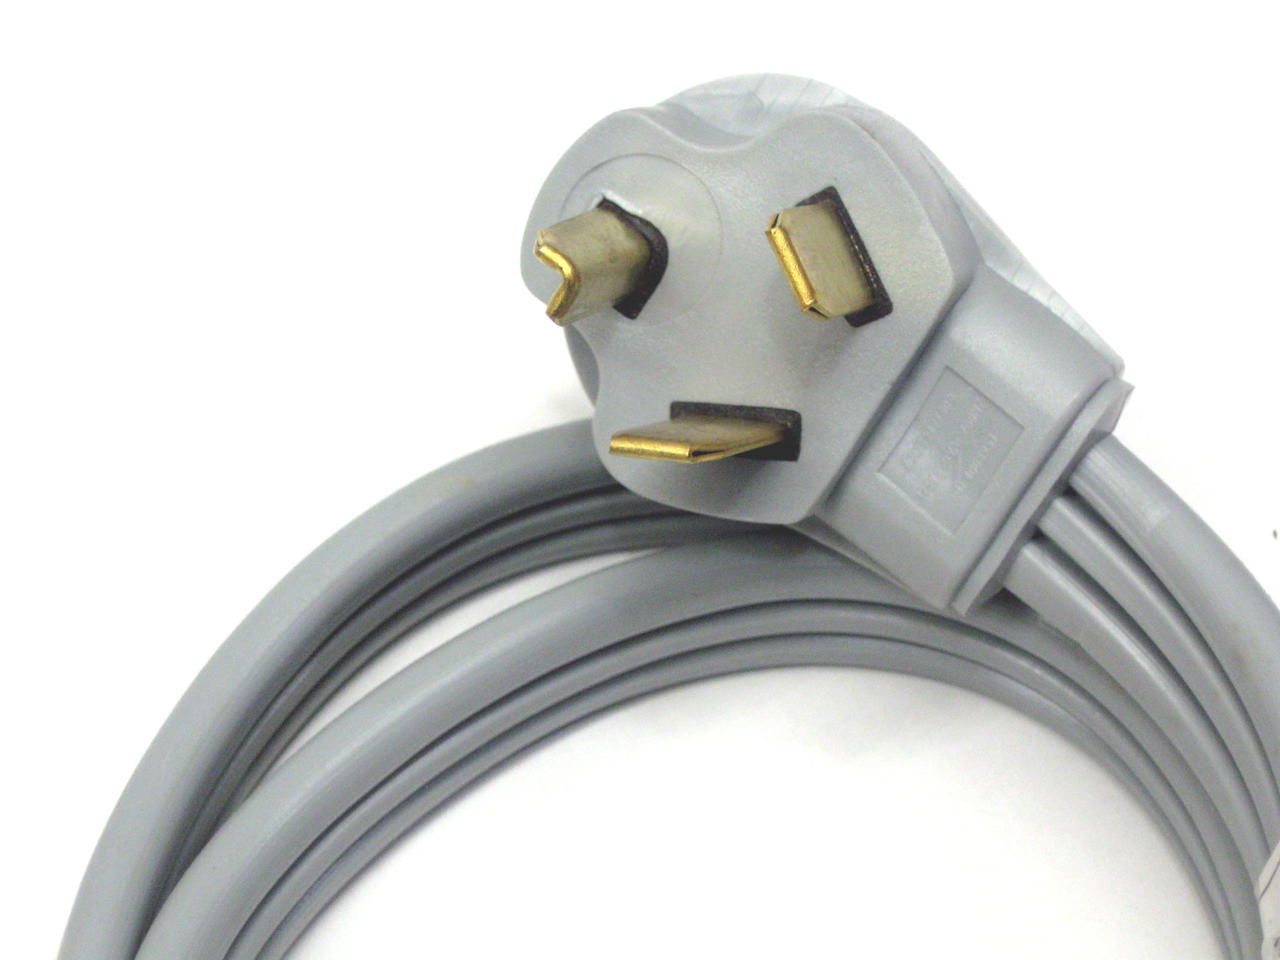 Range Vs Dryer Cord There's A Difference Mcbs Supply Co Inc. Dryer Cord. Wiring. Us Dryer Outlet Wiring At Scoala.co